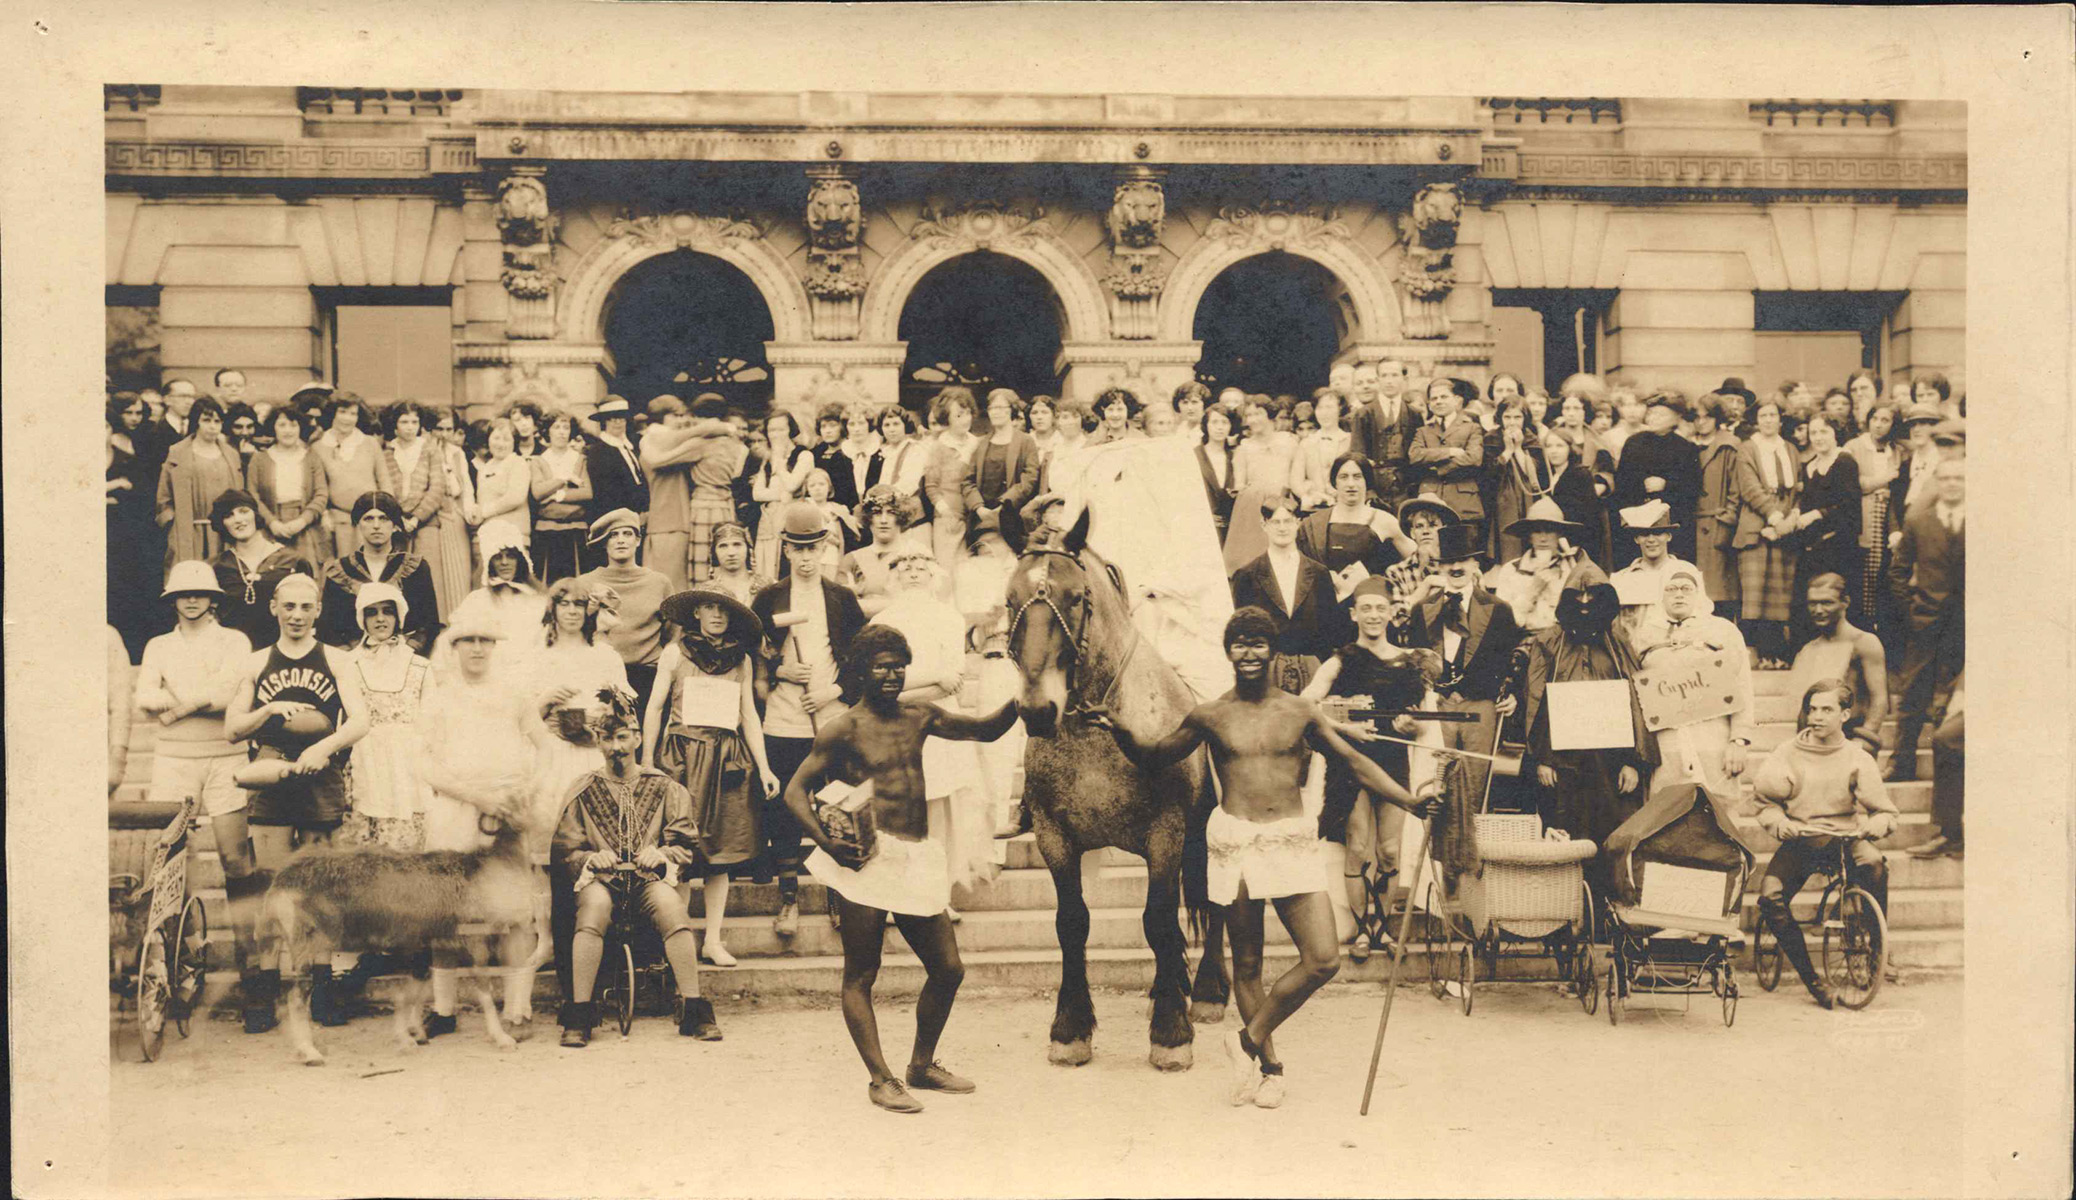 Large group photo of Haresfoot Club initiation in 1923. Depicts many students in various costumes including blackface.